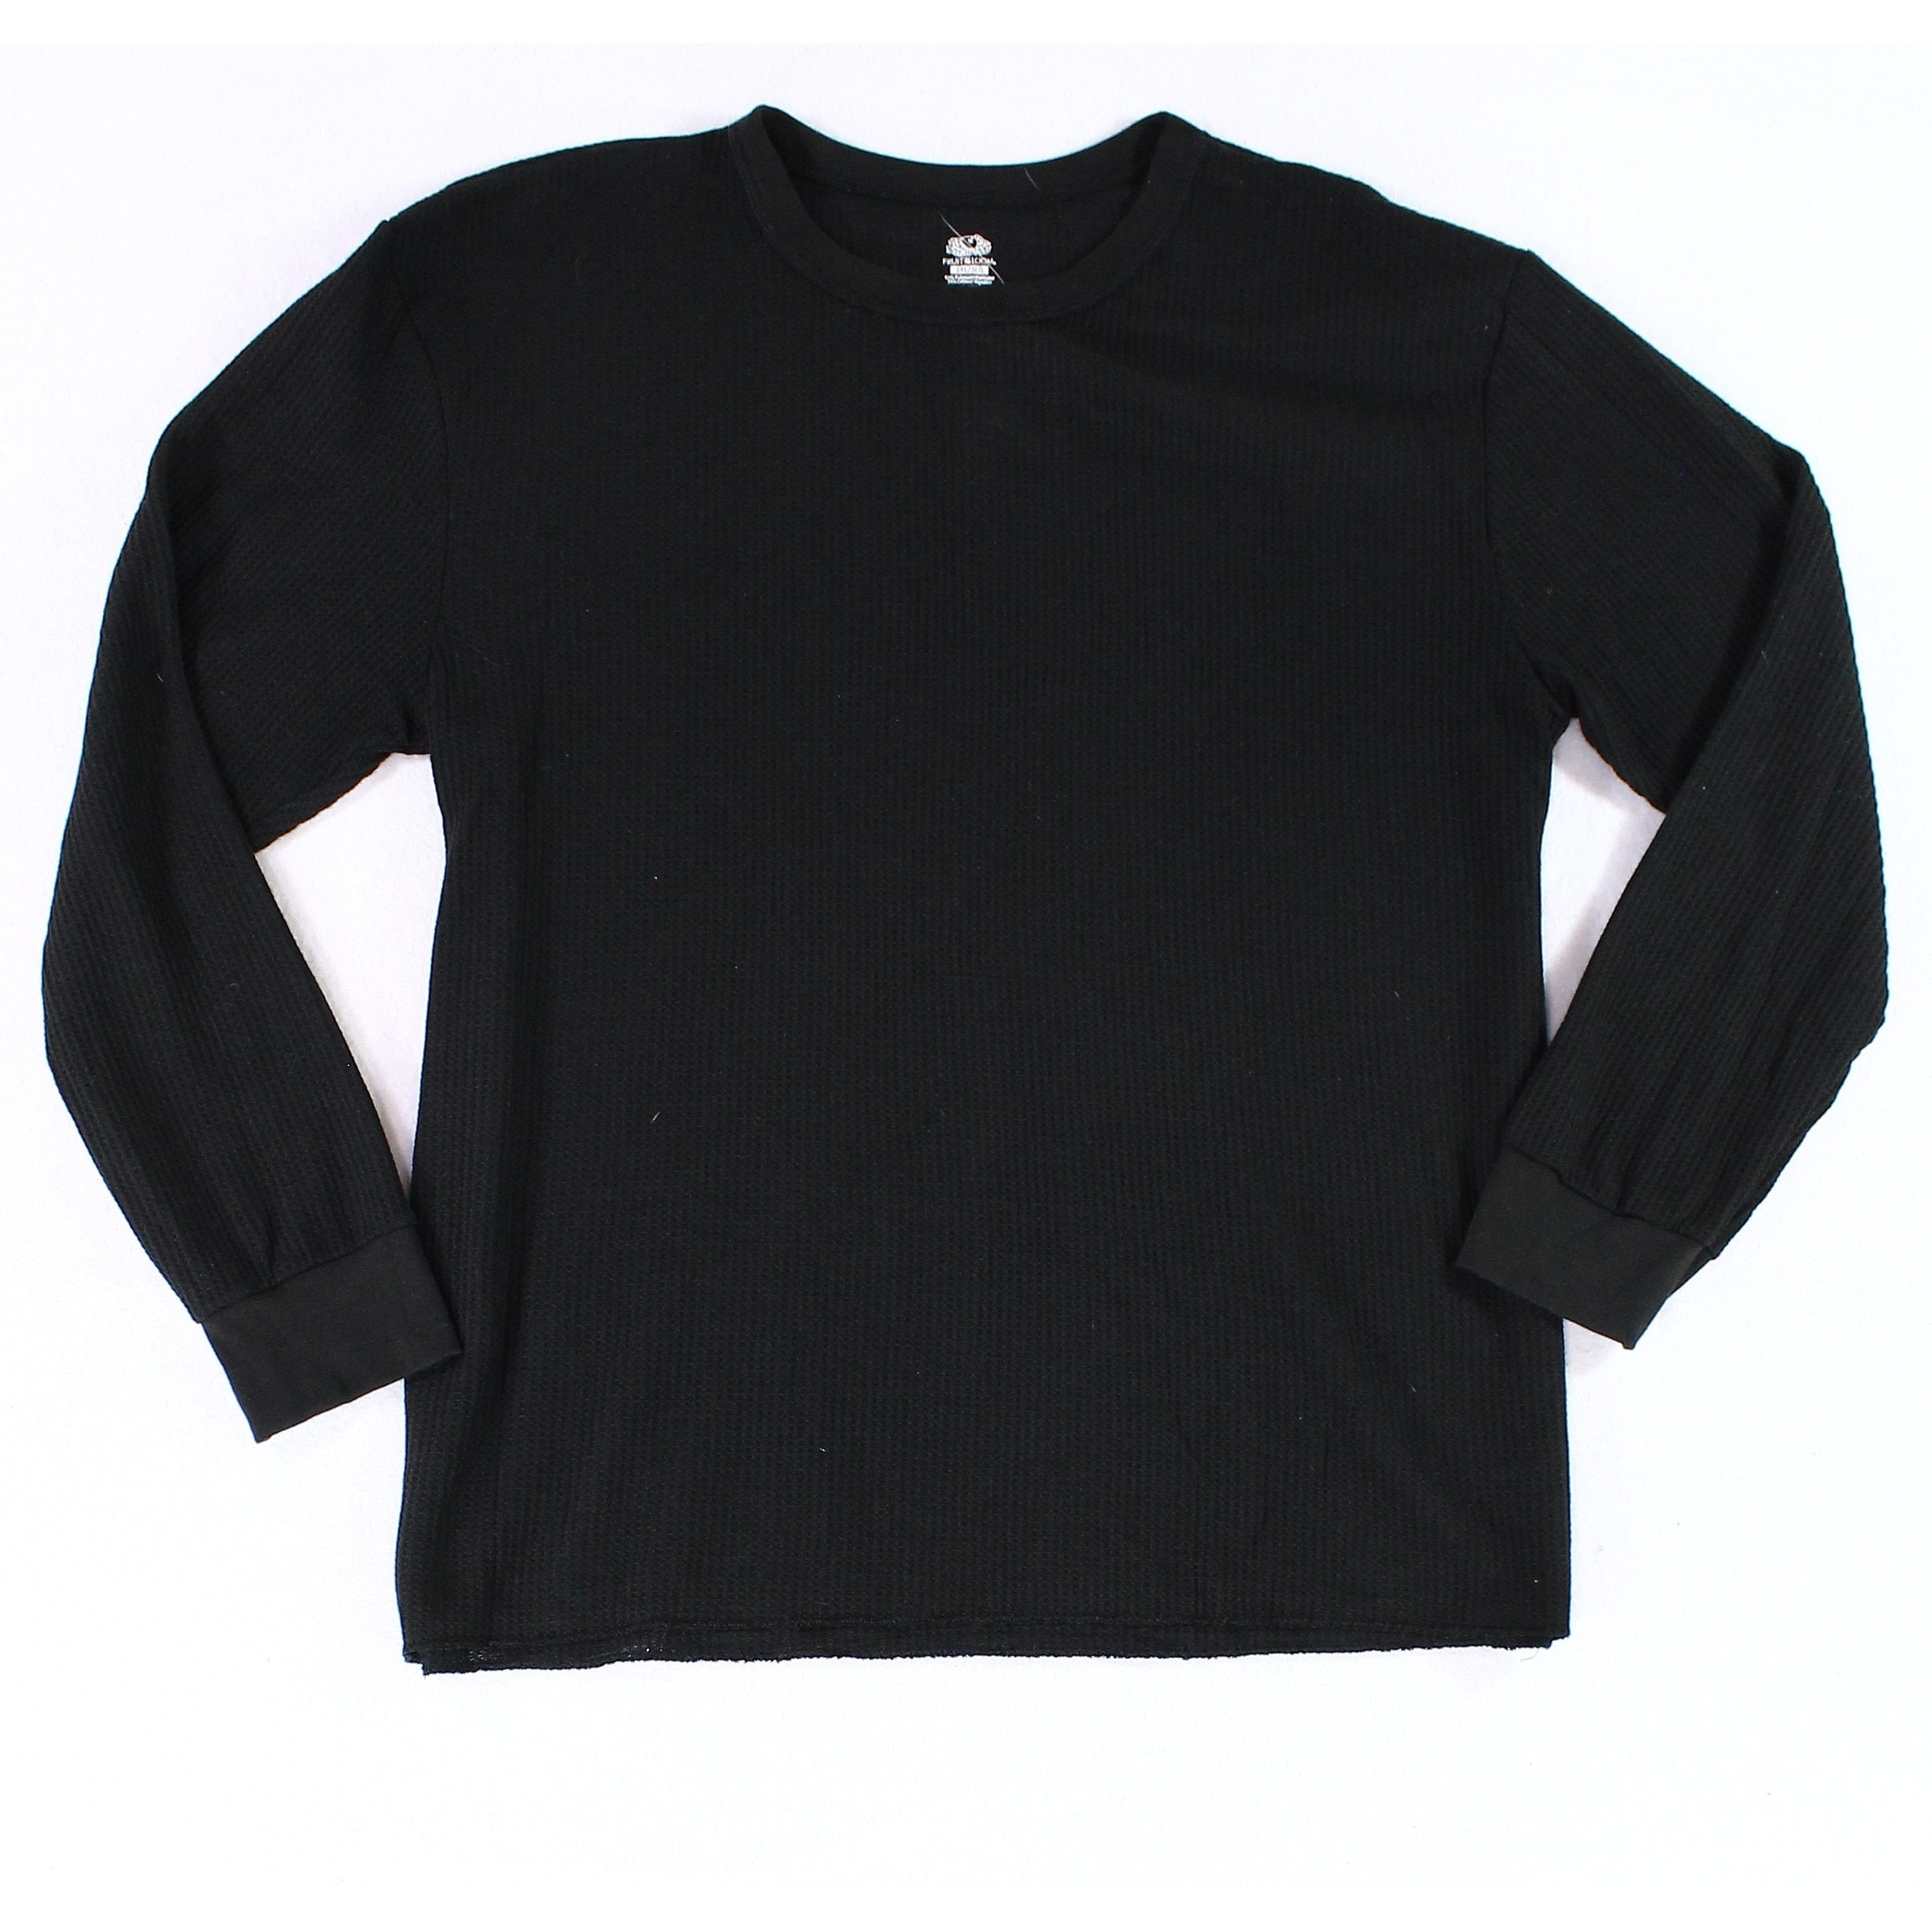 Shop Fruit Of The Loom Black Mens Size 3xl Thermal Crewneck Tee T